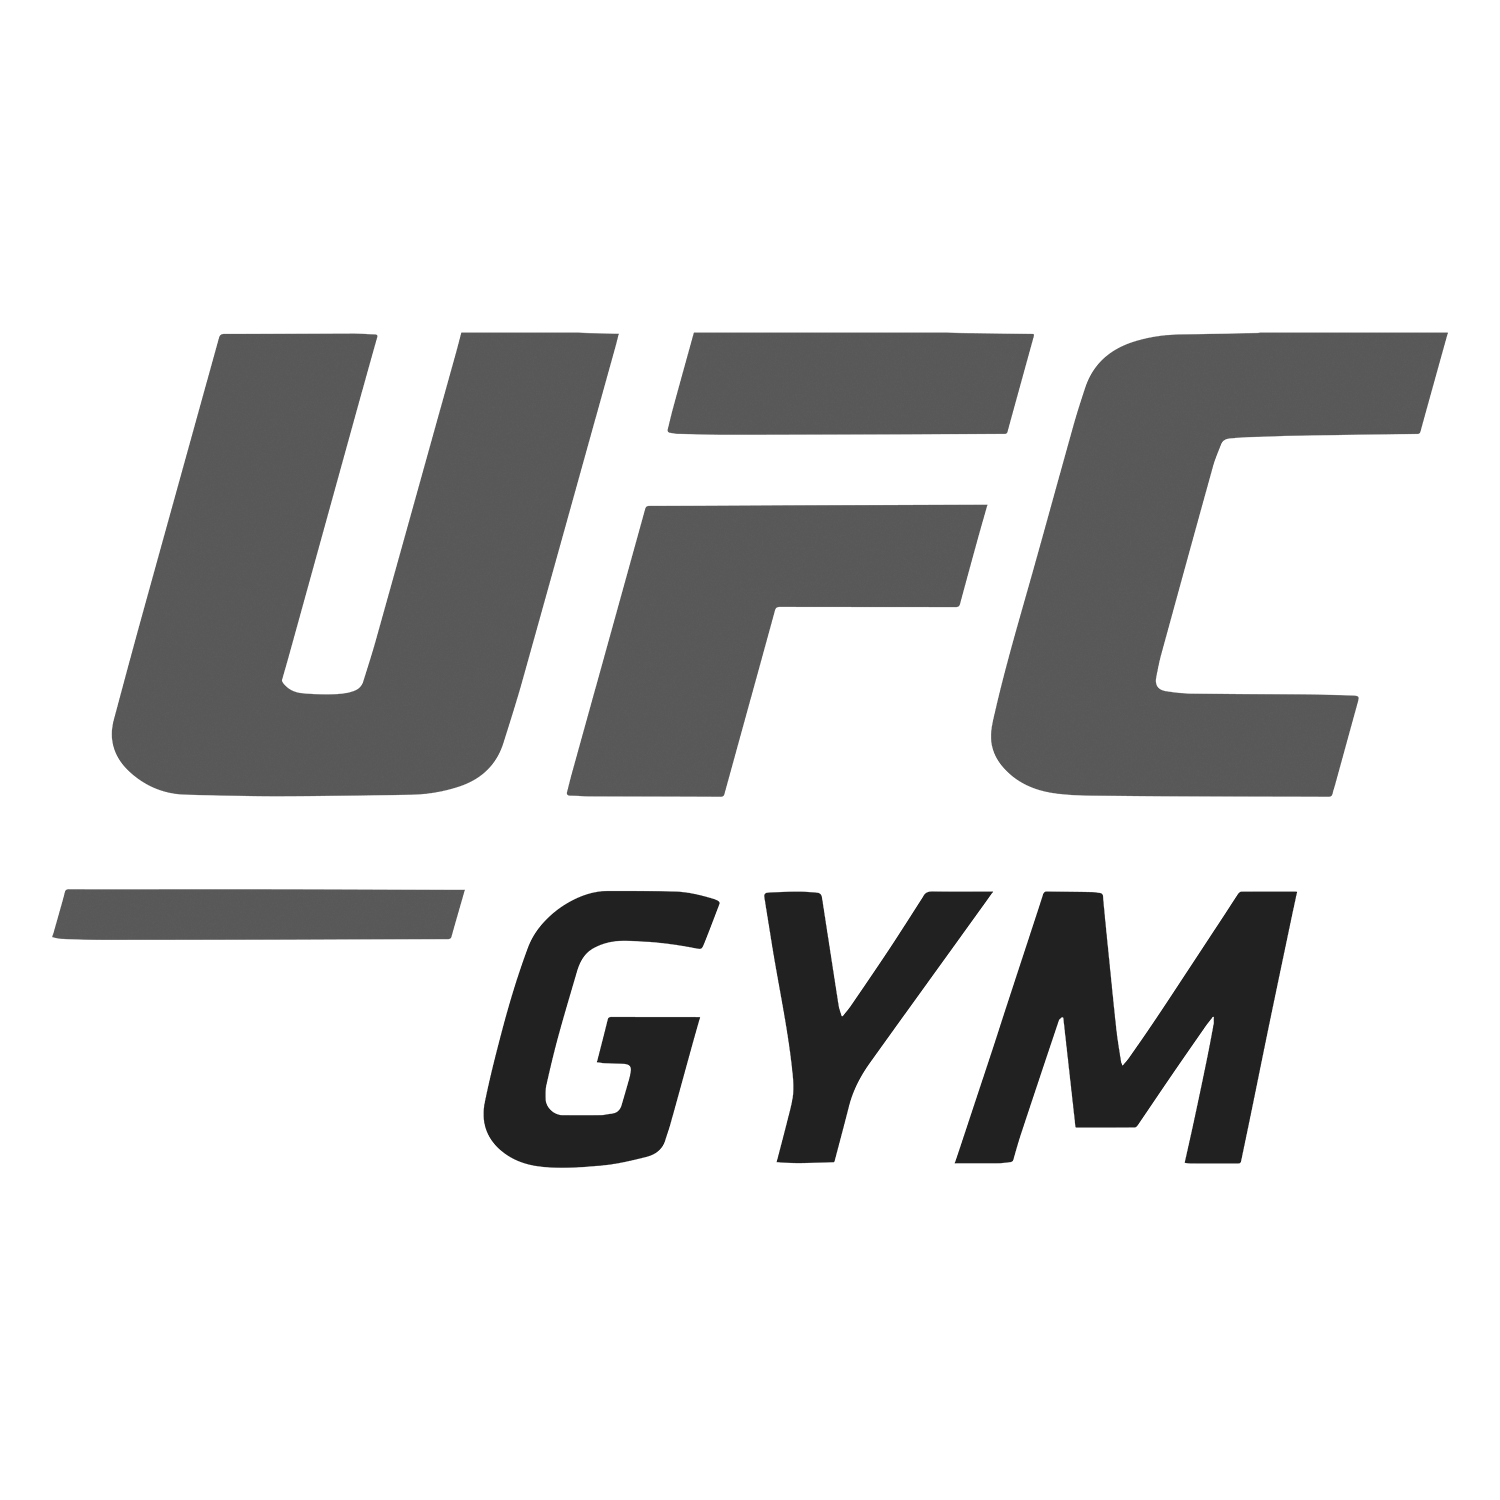 UFCGym_BW.png